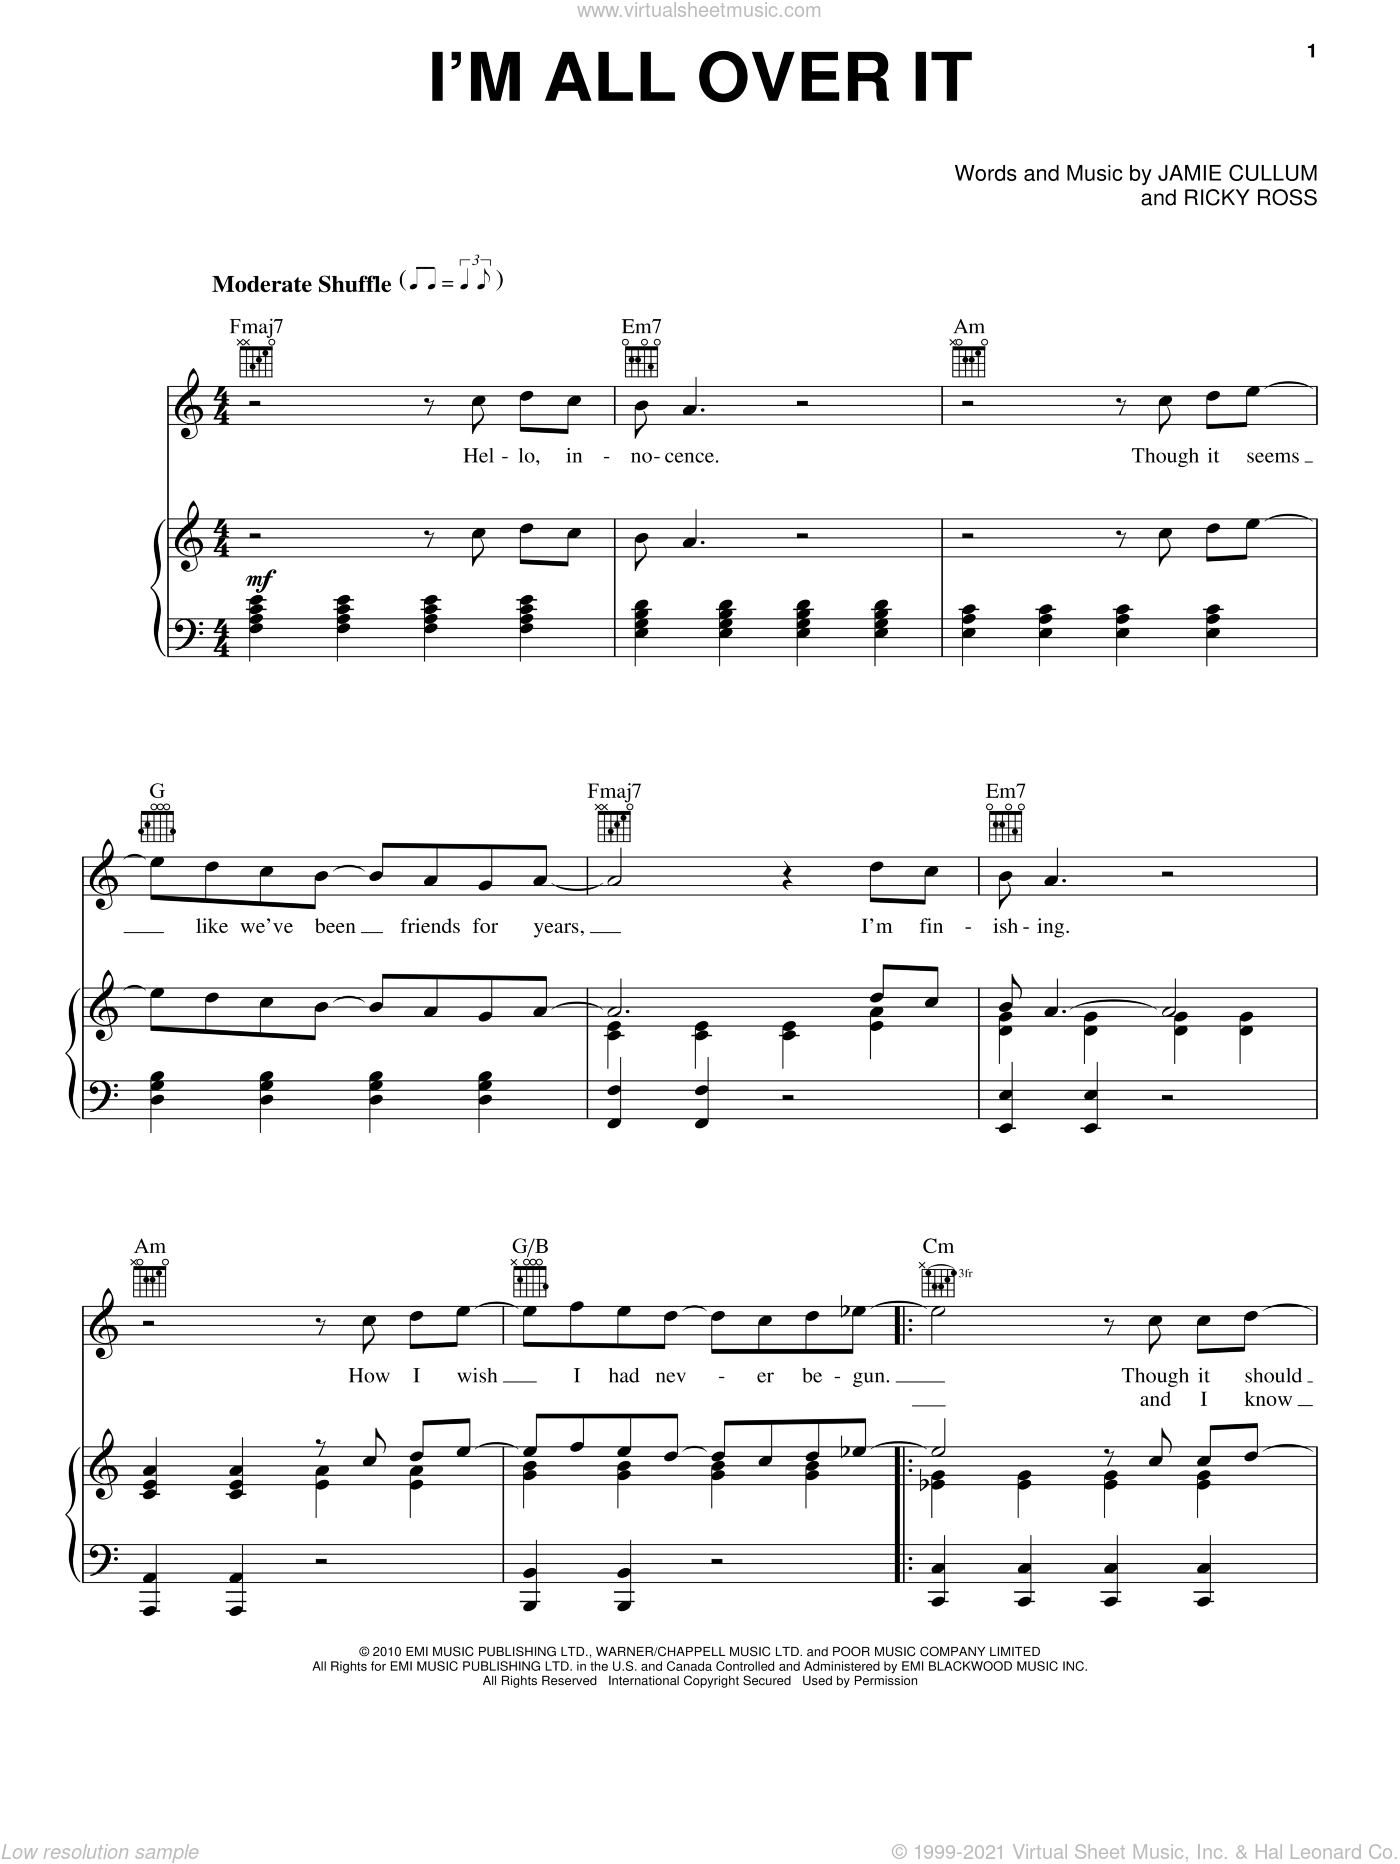 I'm All Over It sheet music for voice, piano or guitar by Jamie Cullum and Ricky Ross, intermediate skill level